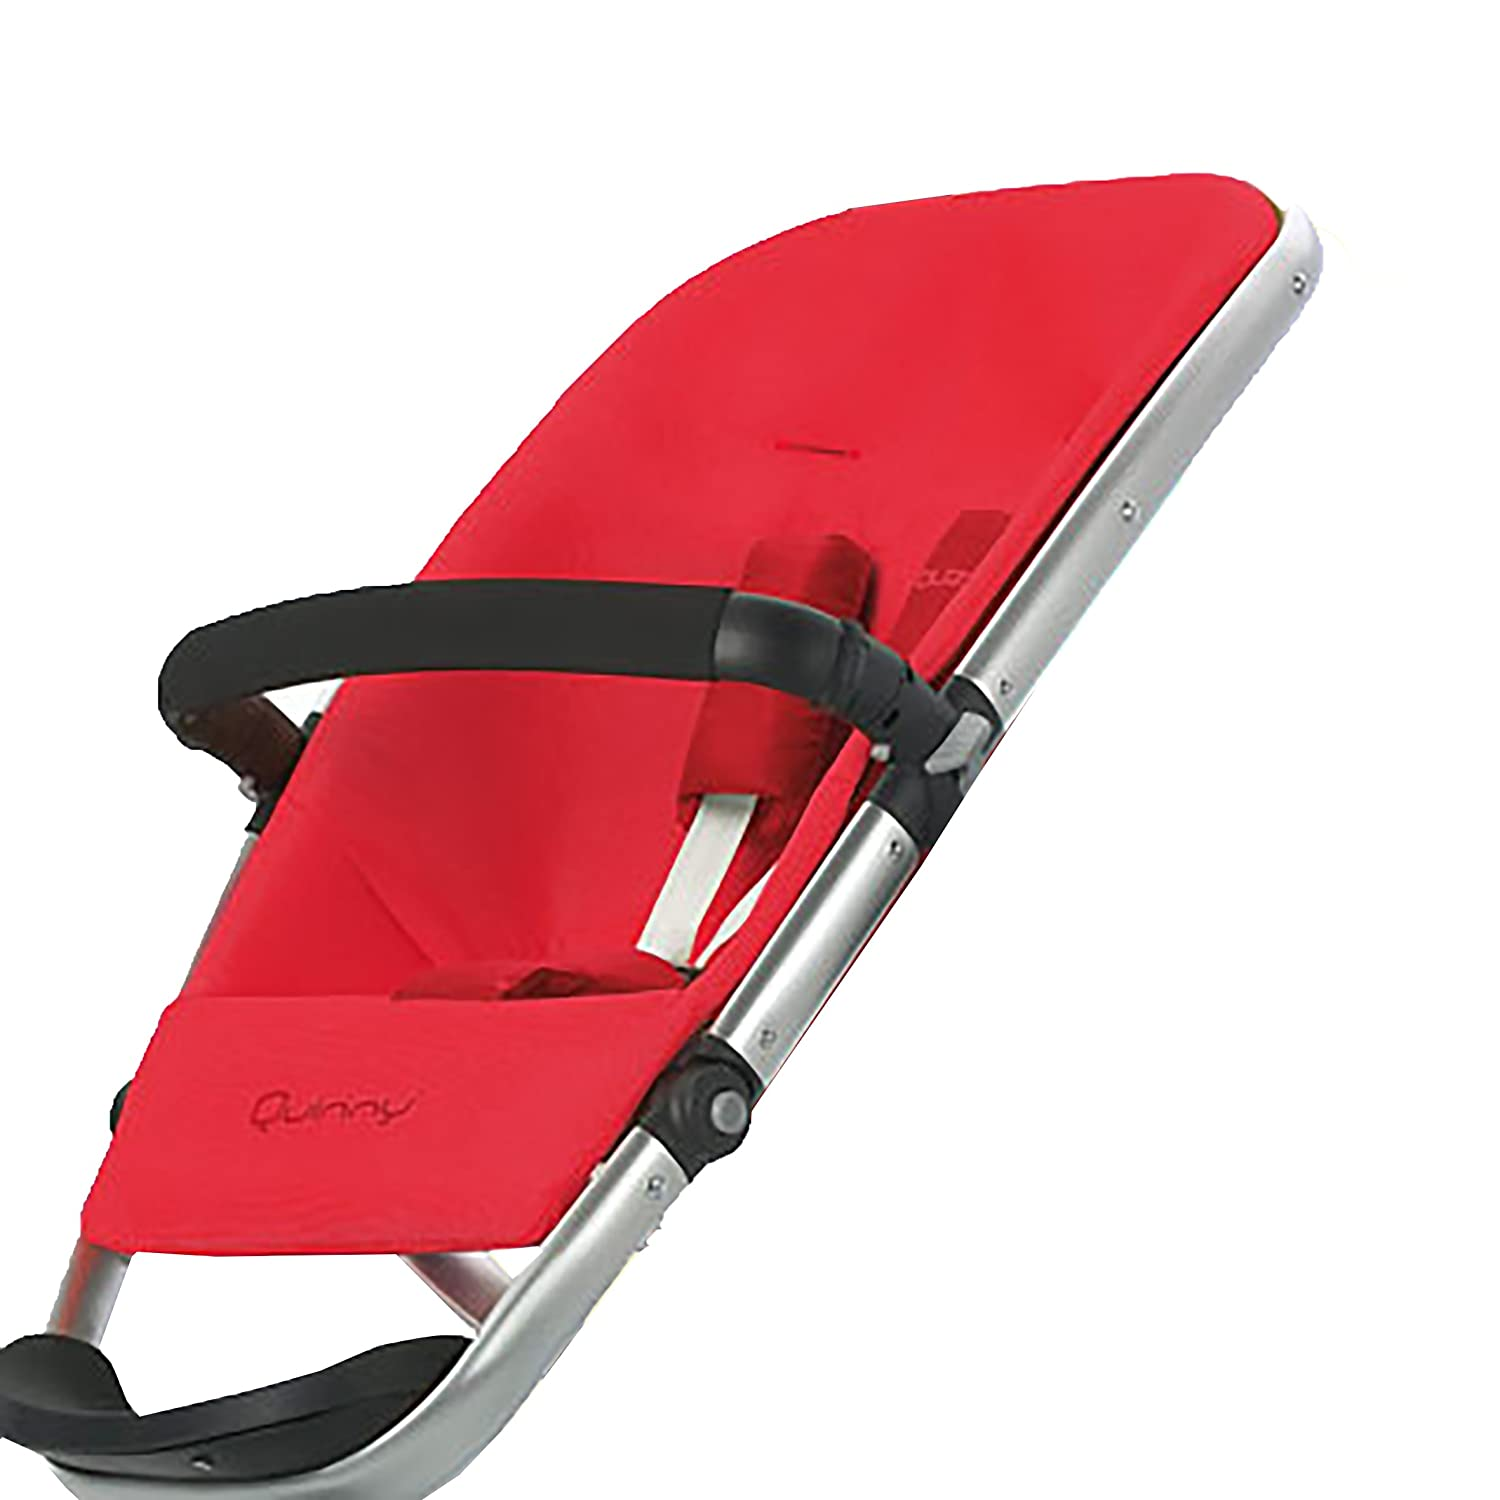 NEW: Quinny Buzz XL seat cover (18mths+) STRAWBERRY RED >BRAND NEW 2009 version (STRAWBERRY RED)